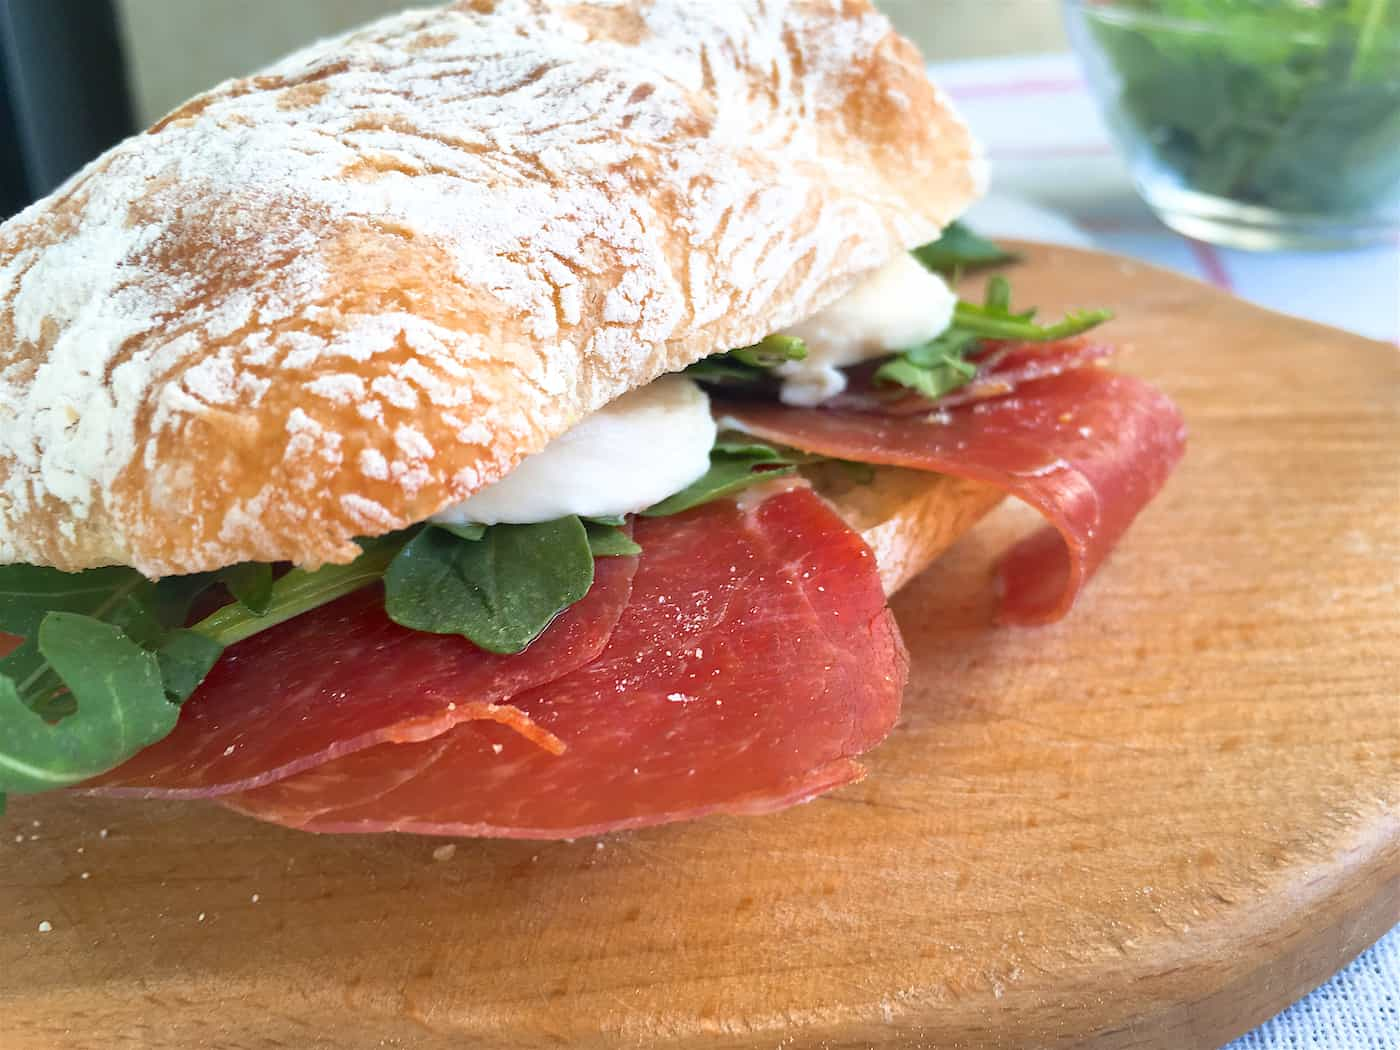 Photo of Prosciutto Ham, Mozzarella & Arugula Panini Sandwich